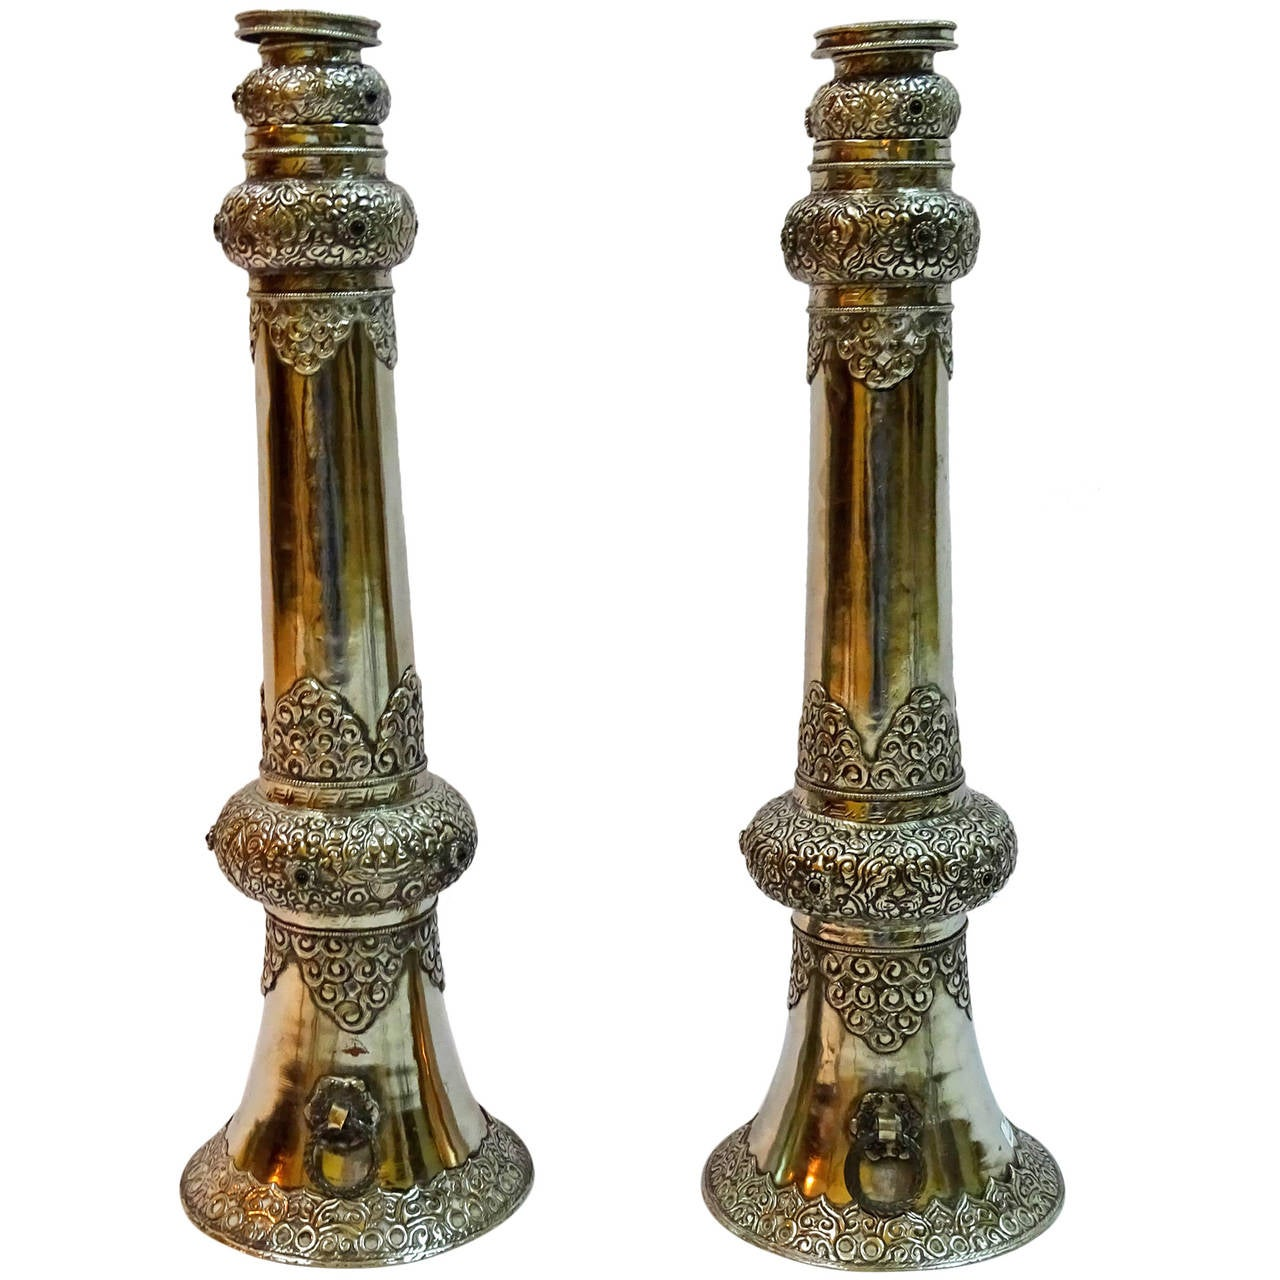 Pair Of Early 20th Century Telescoping Ceremonial Temple